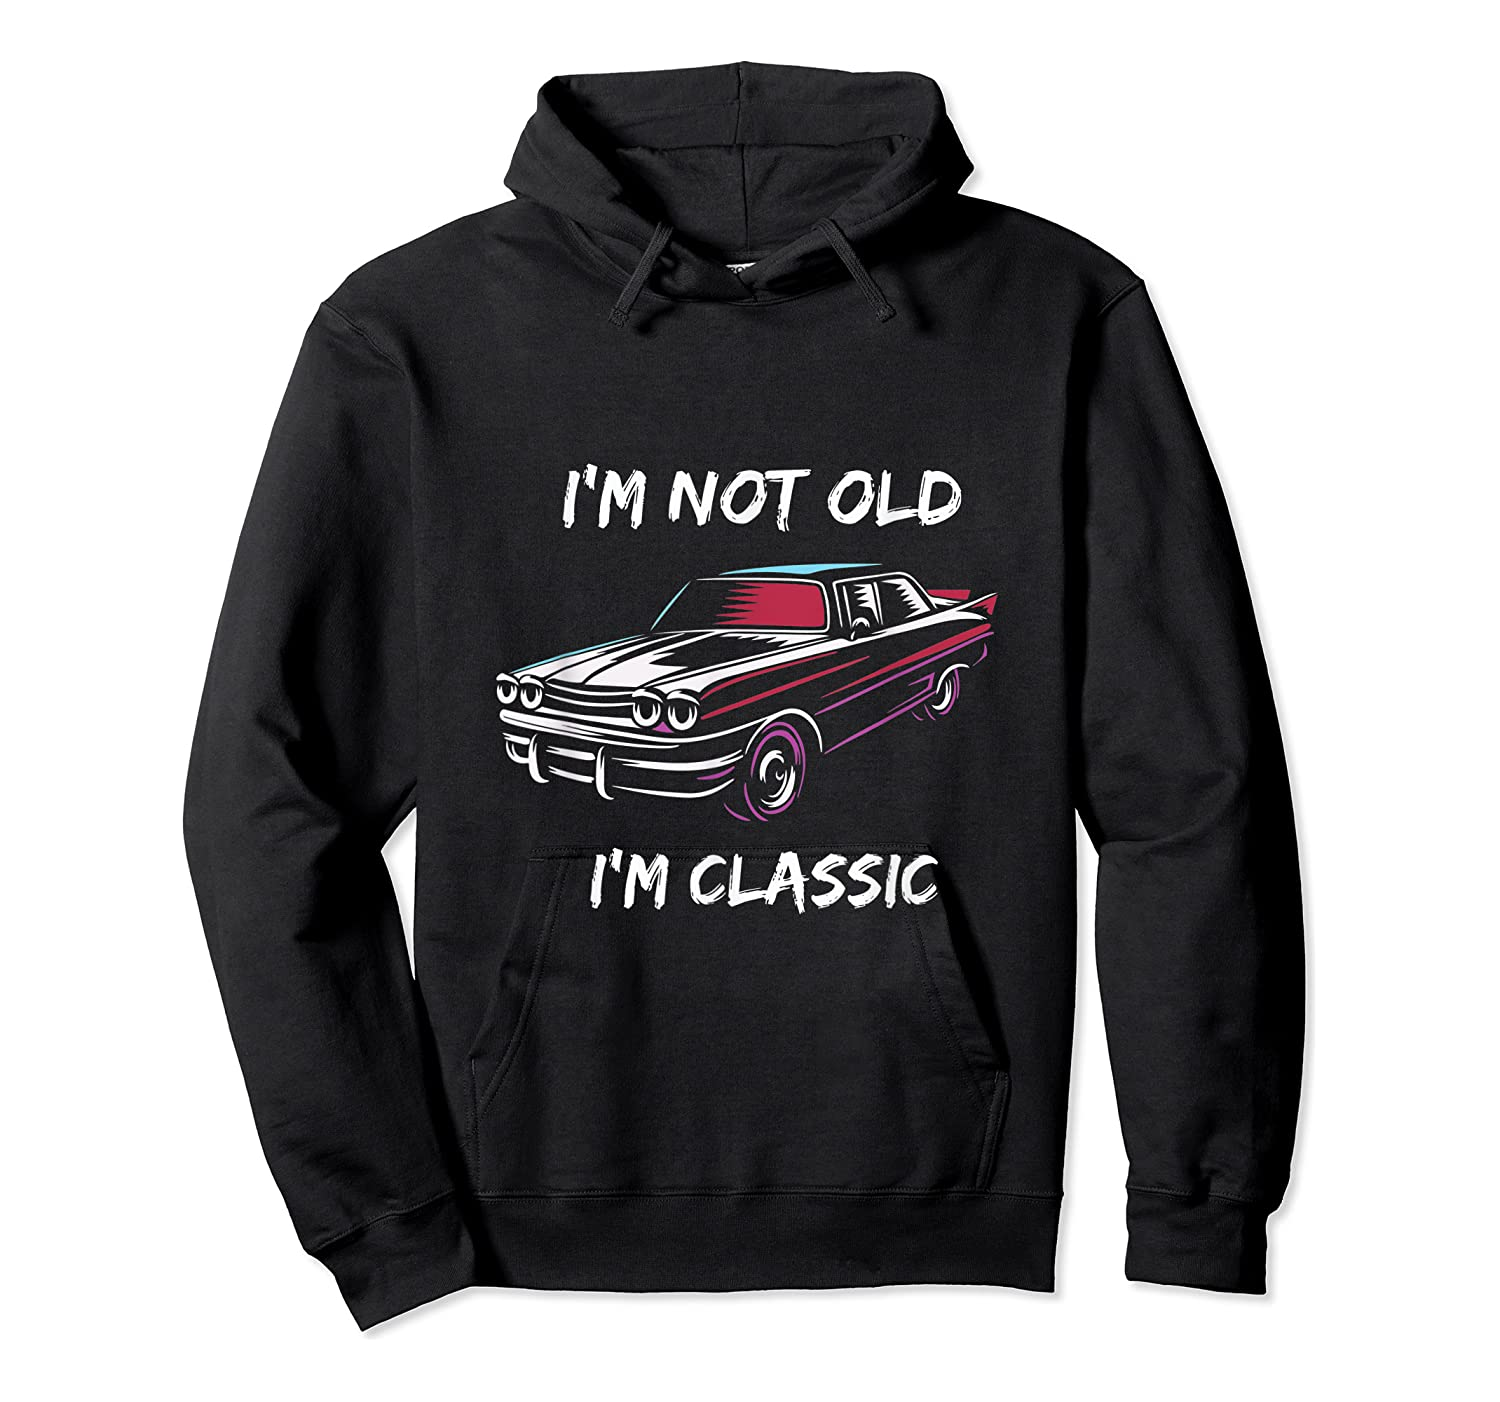 I'm Not Old, I'm Classic T-shirt Unisex Pullover Hoodie